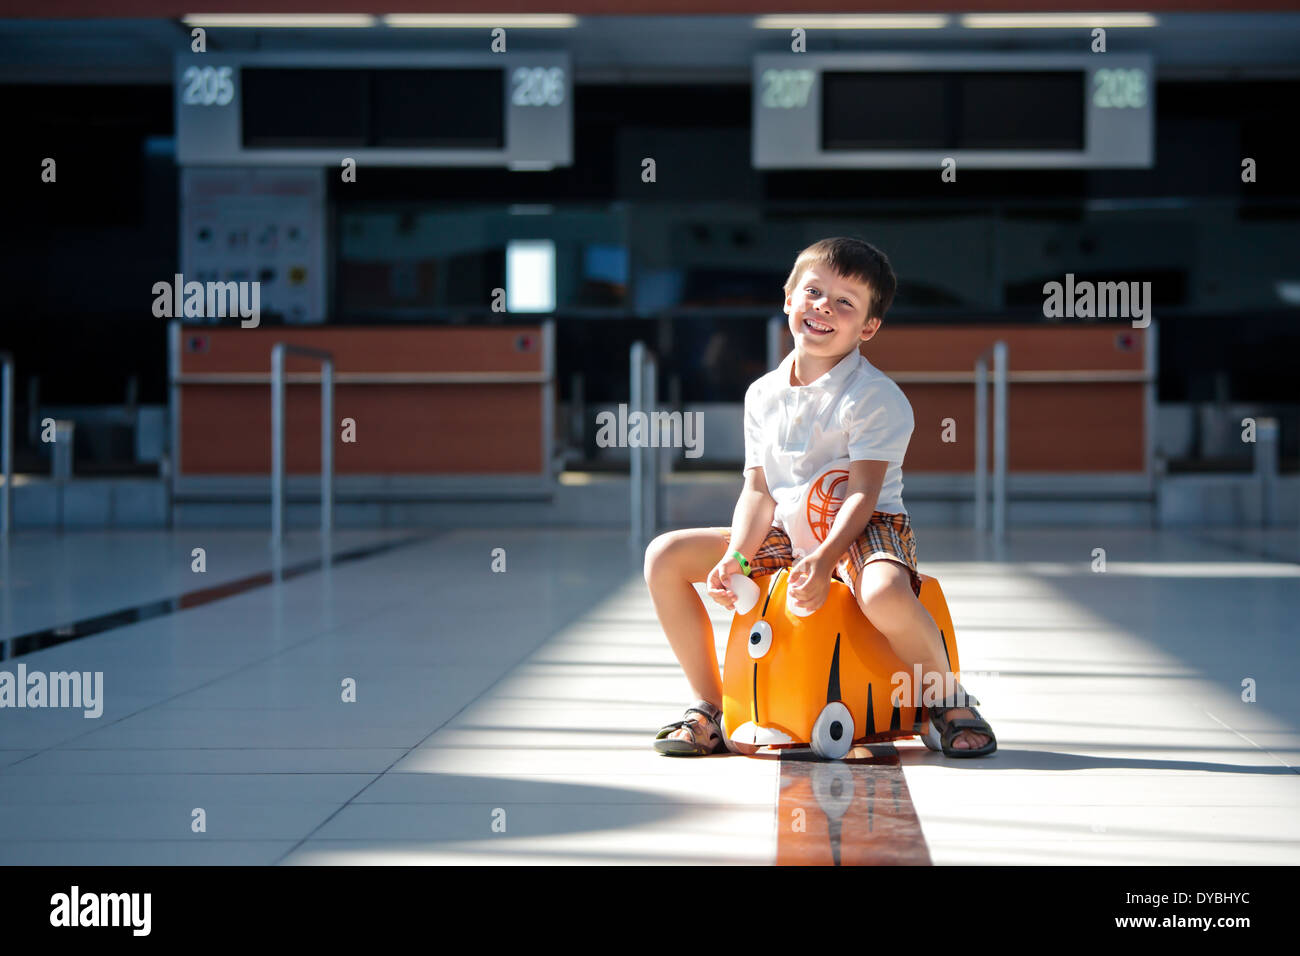 Cute little boy with orange suitcase at airport - Stock Image